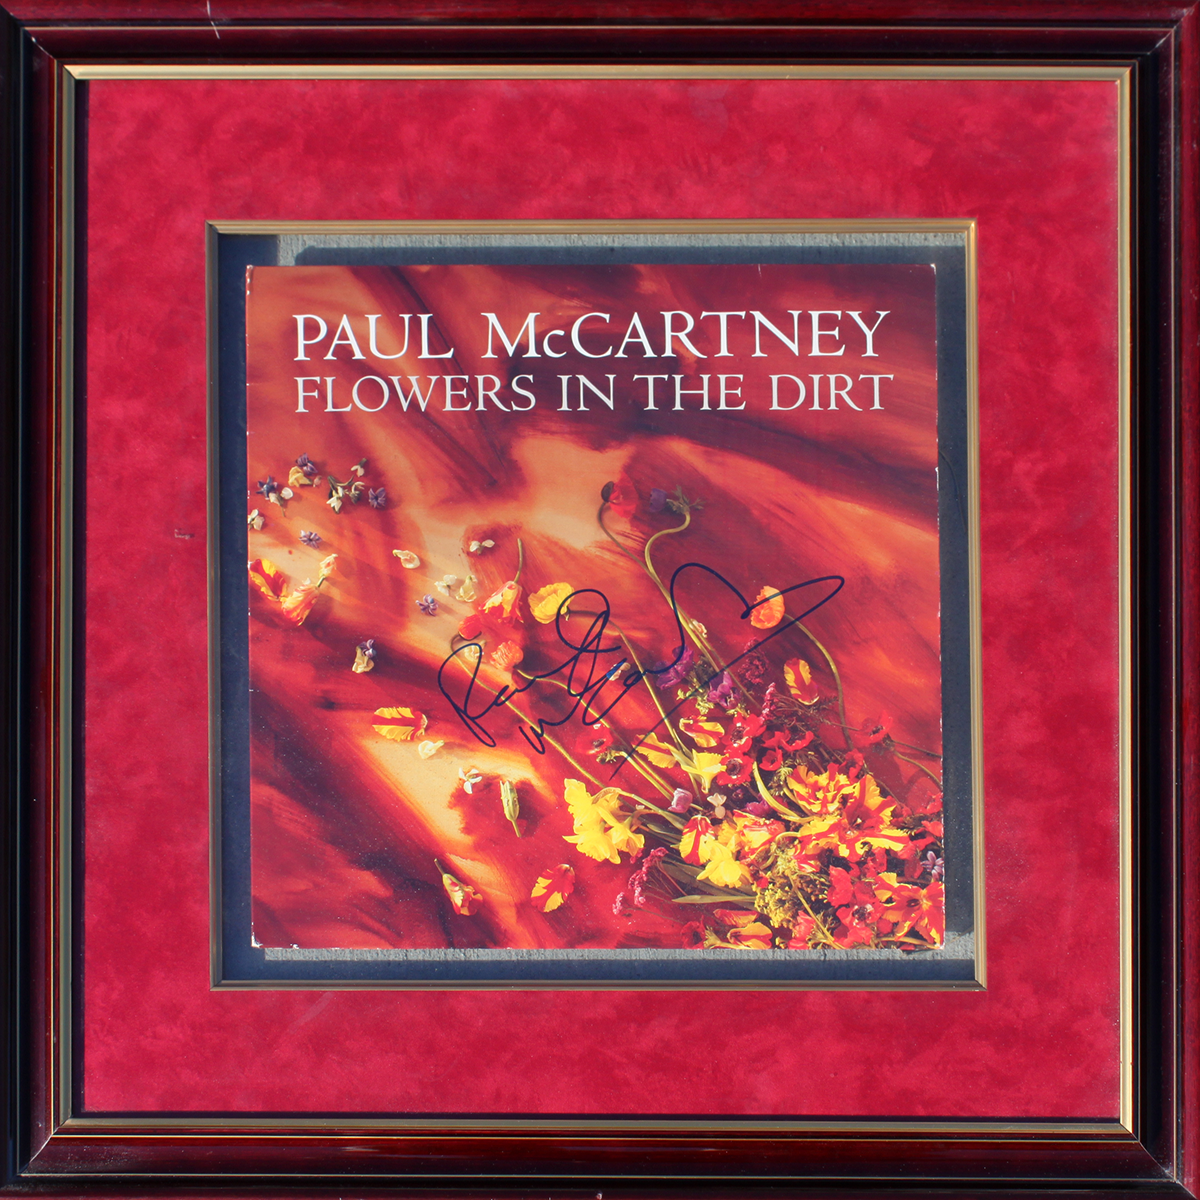 Framed LP - Paul McCartney - Flowers In The Dirt #1